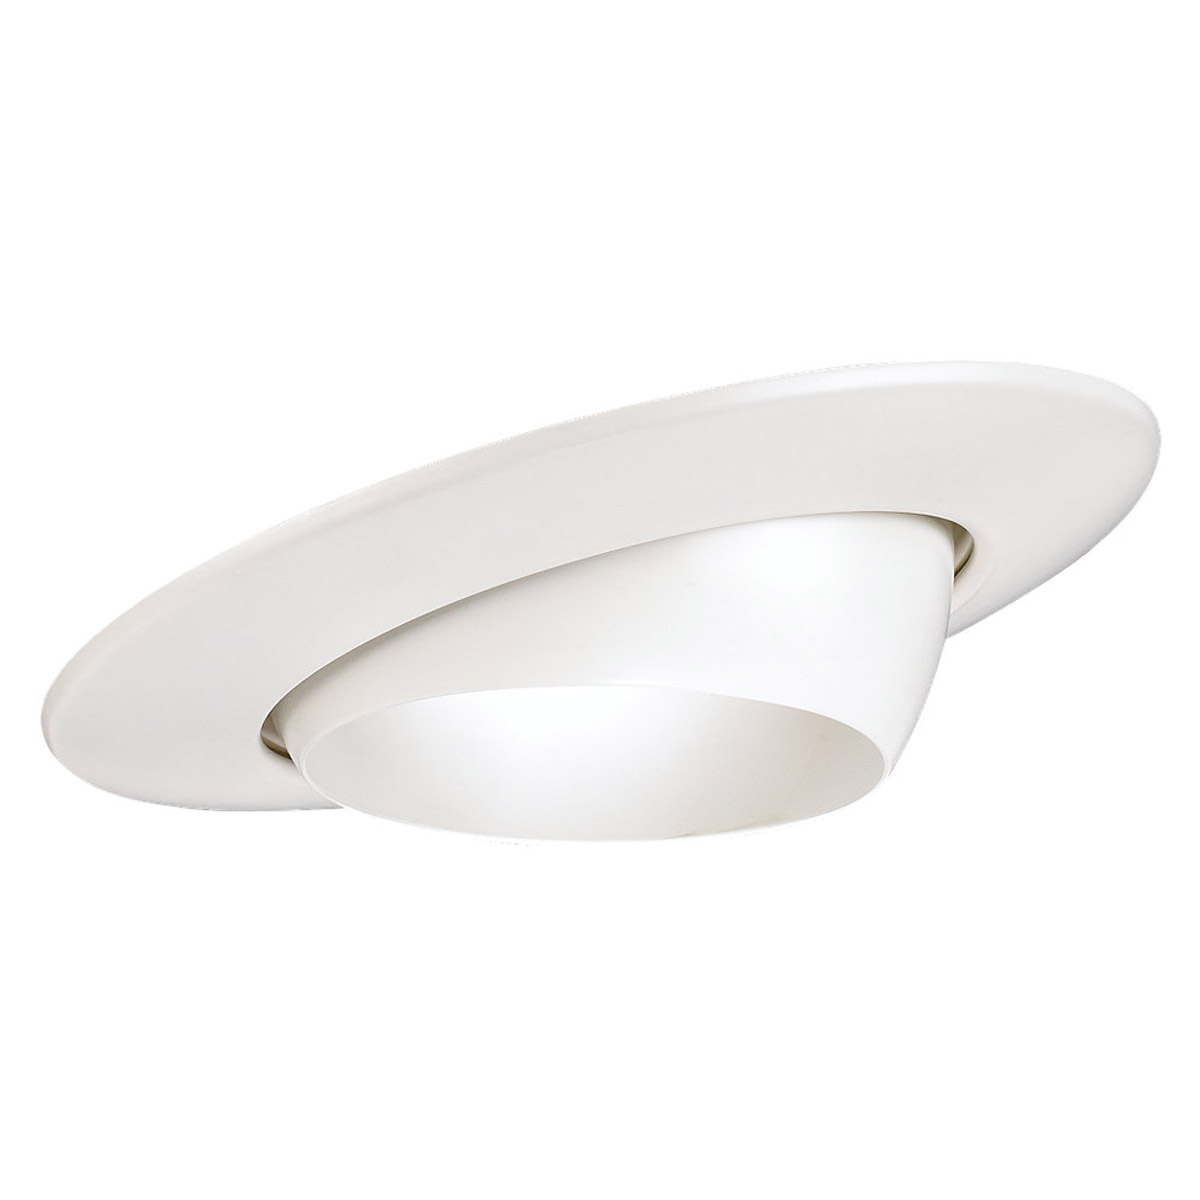 Sea Gull Lighting Signature Recessed Trim Only in White 1136-15